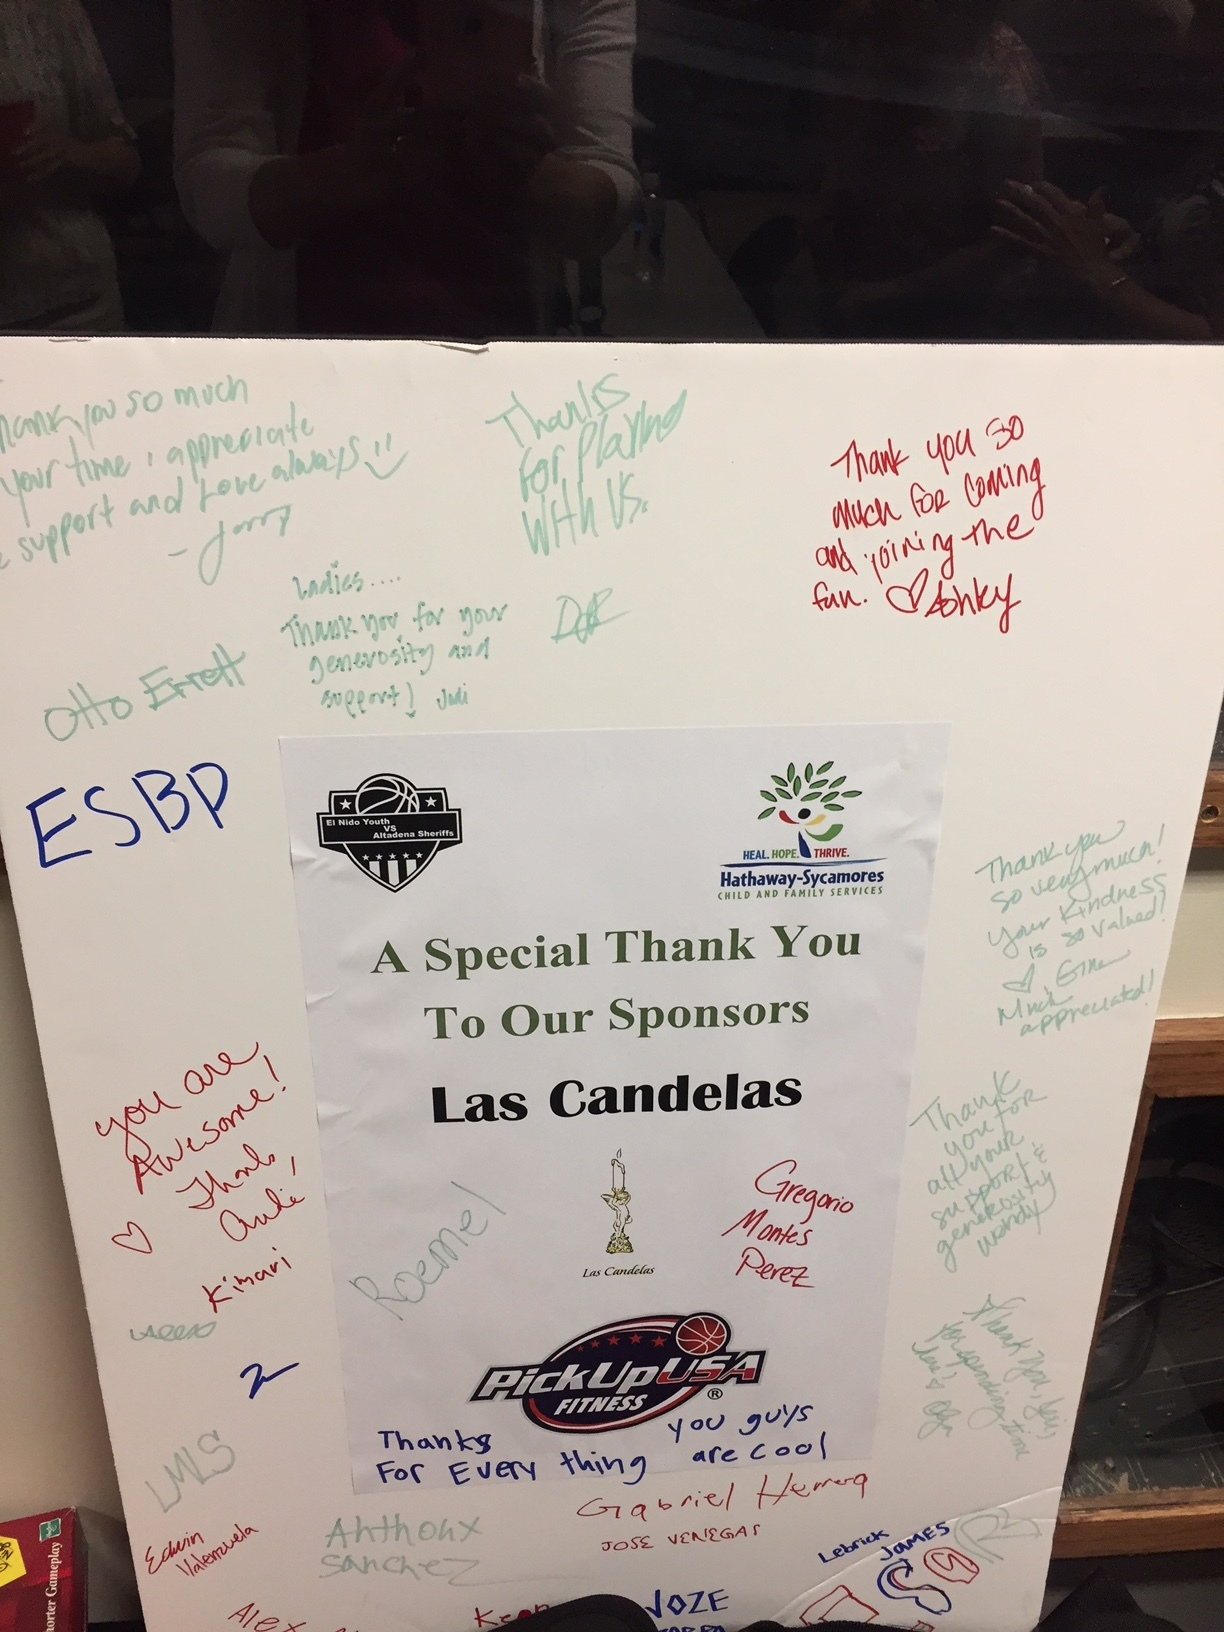 Thank you from Hathaway Sycamores for Law Enforcement Basketball Game